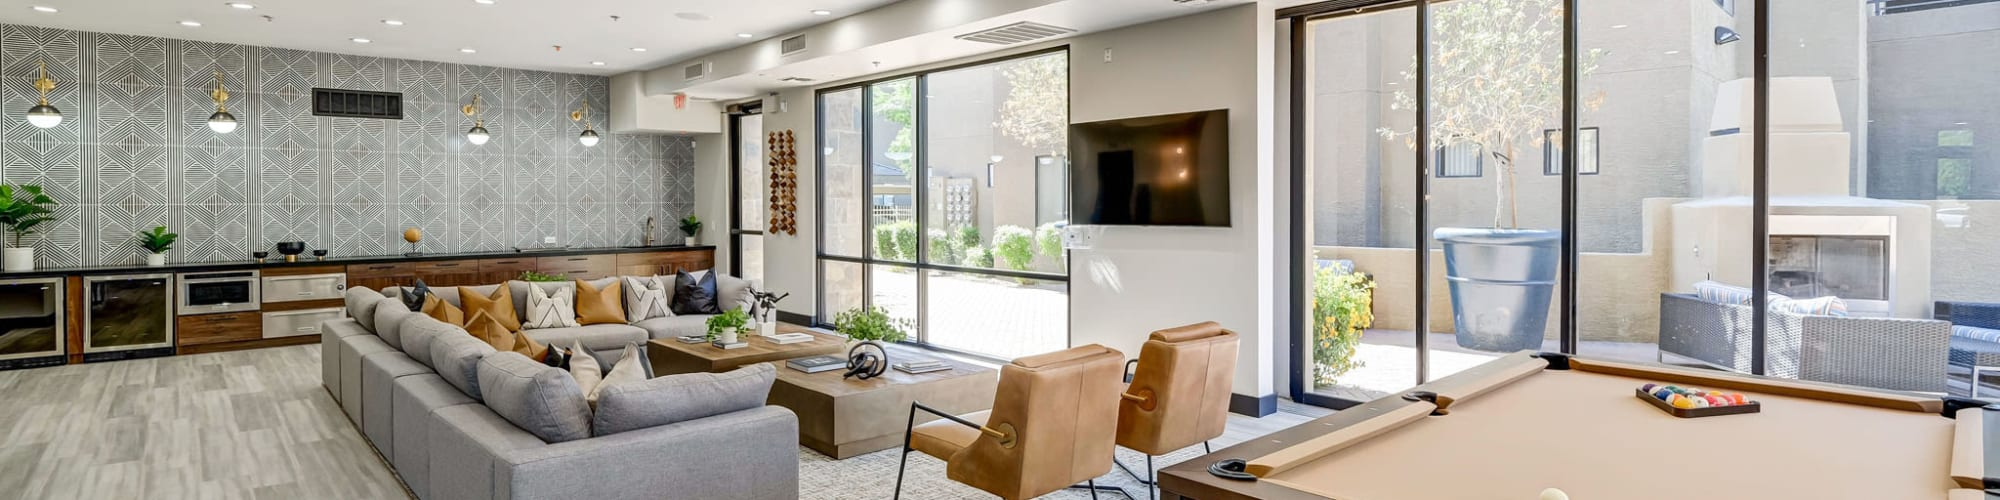 Amenities at Spectra on 7th South in Phoenix, Arizona